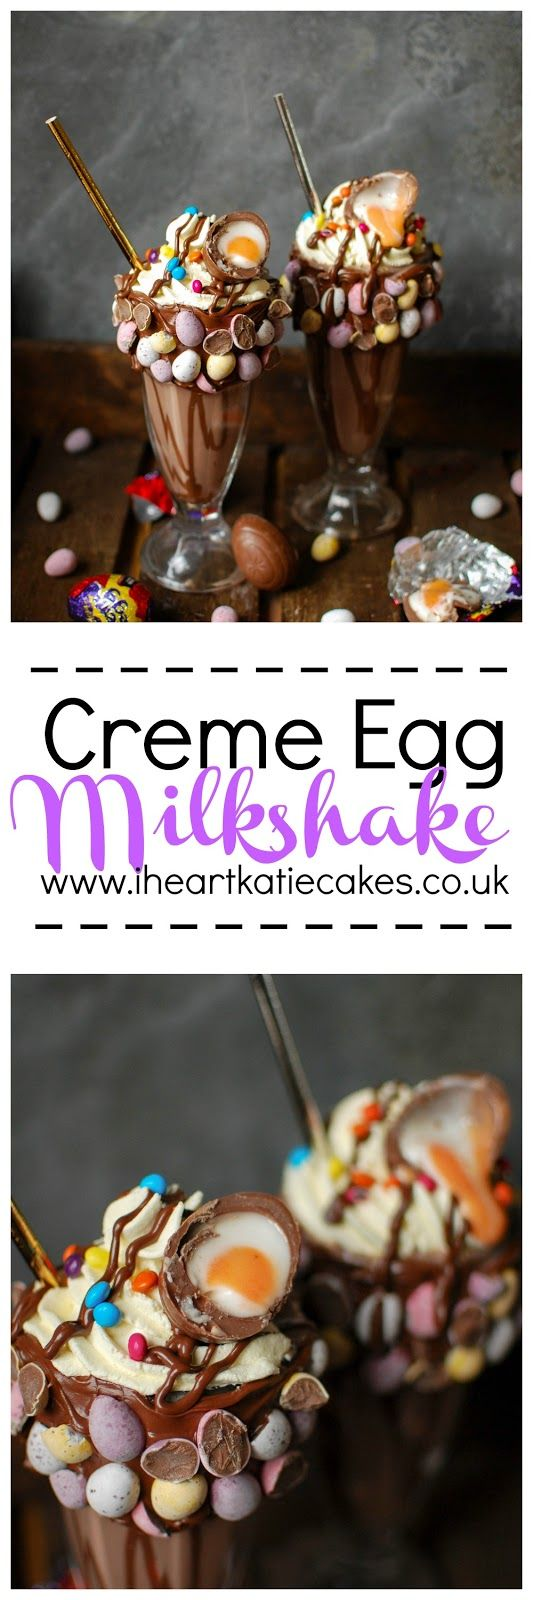 These Creme Egg milkshakes are a super fun way to serve up my favorite Easter treat, and boy are they a piece of cake to make. Just throw everything in a blender, whiz it up and prepare to get messy.